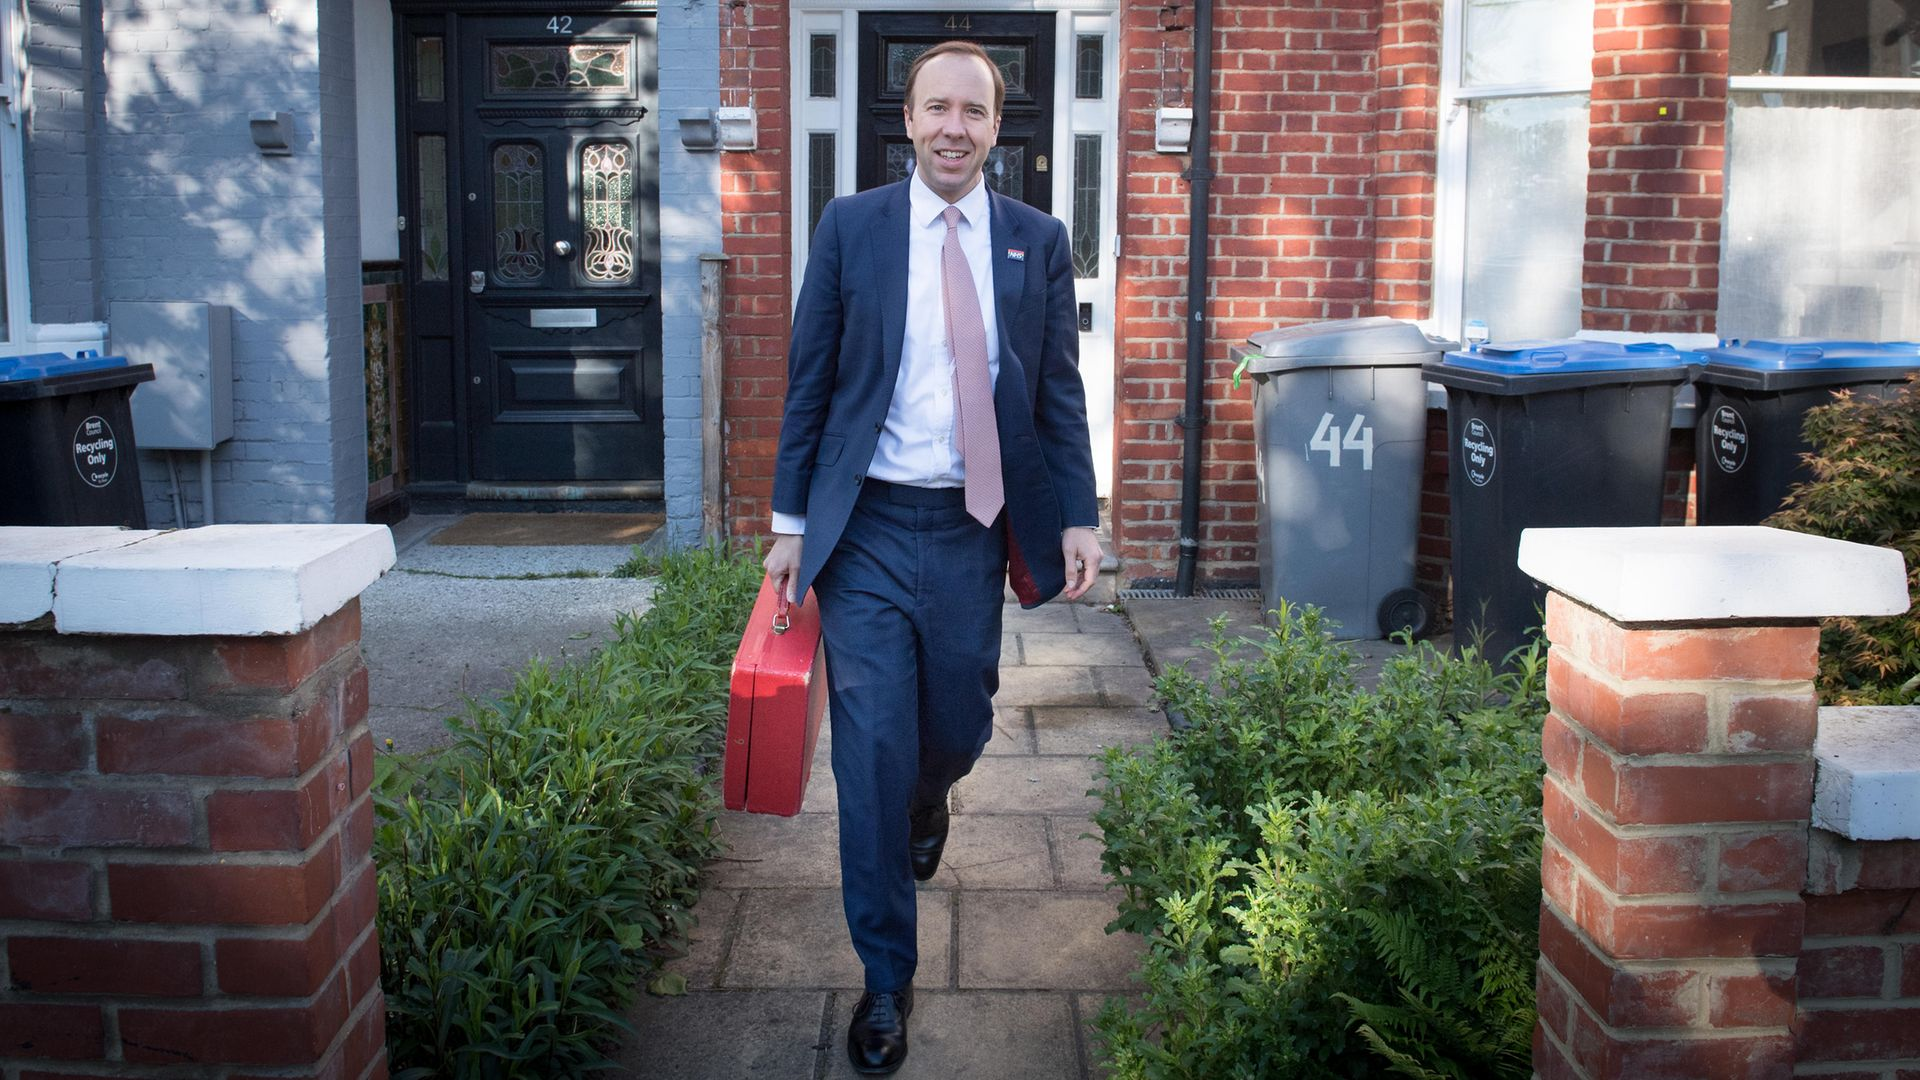 Health Minister Matt Hancock outside his home in north-west London - Credit: PA